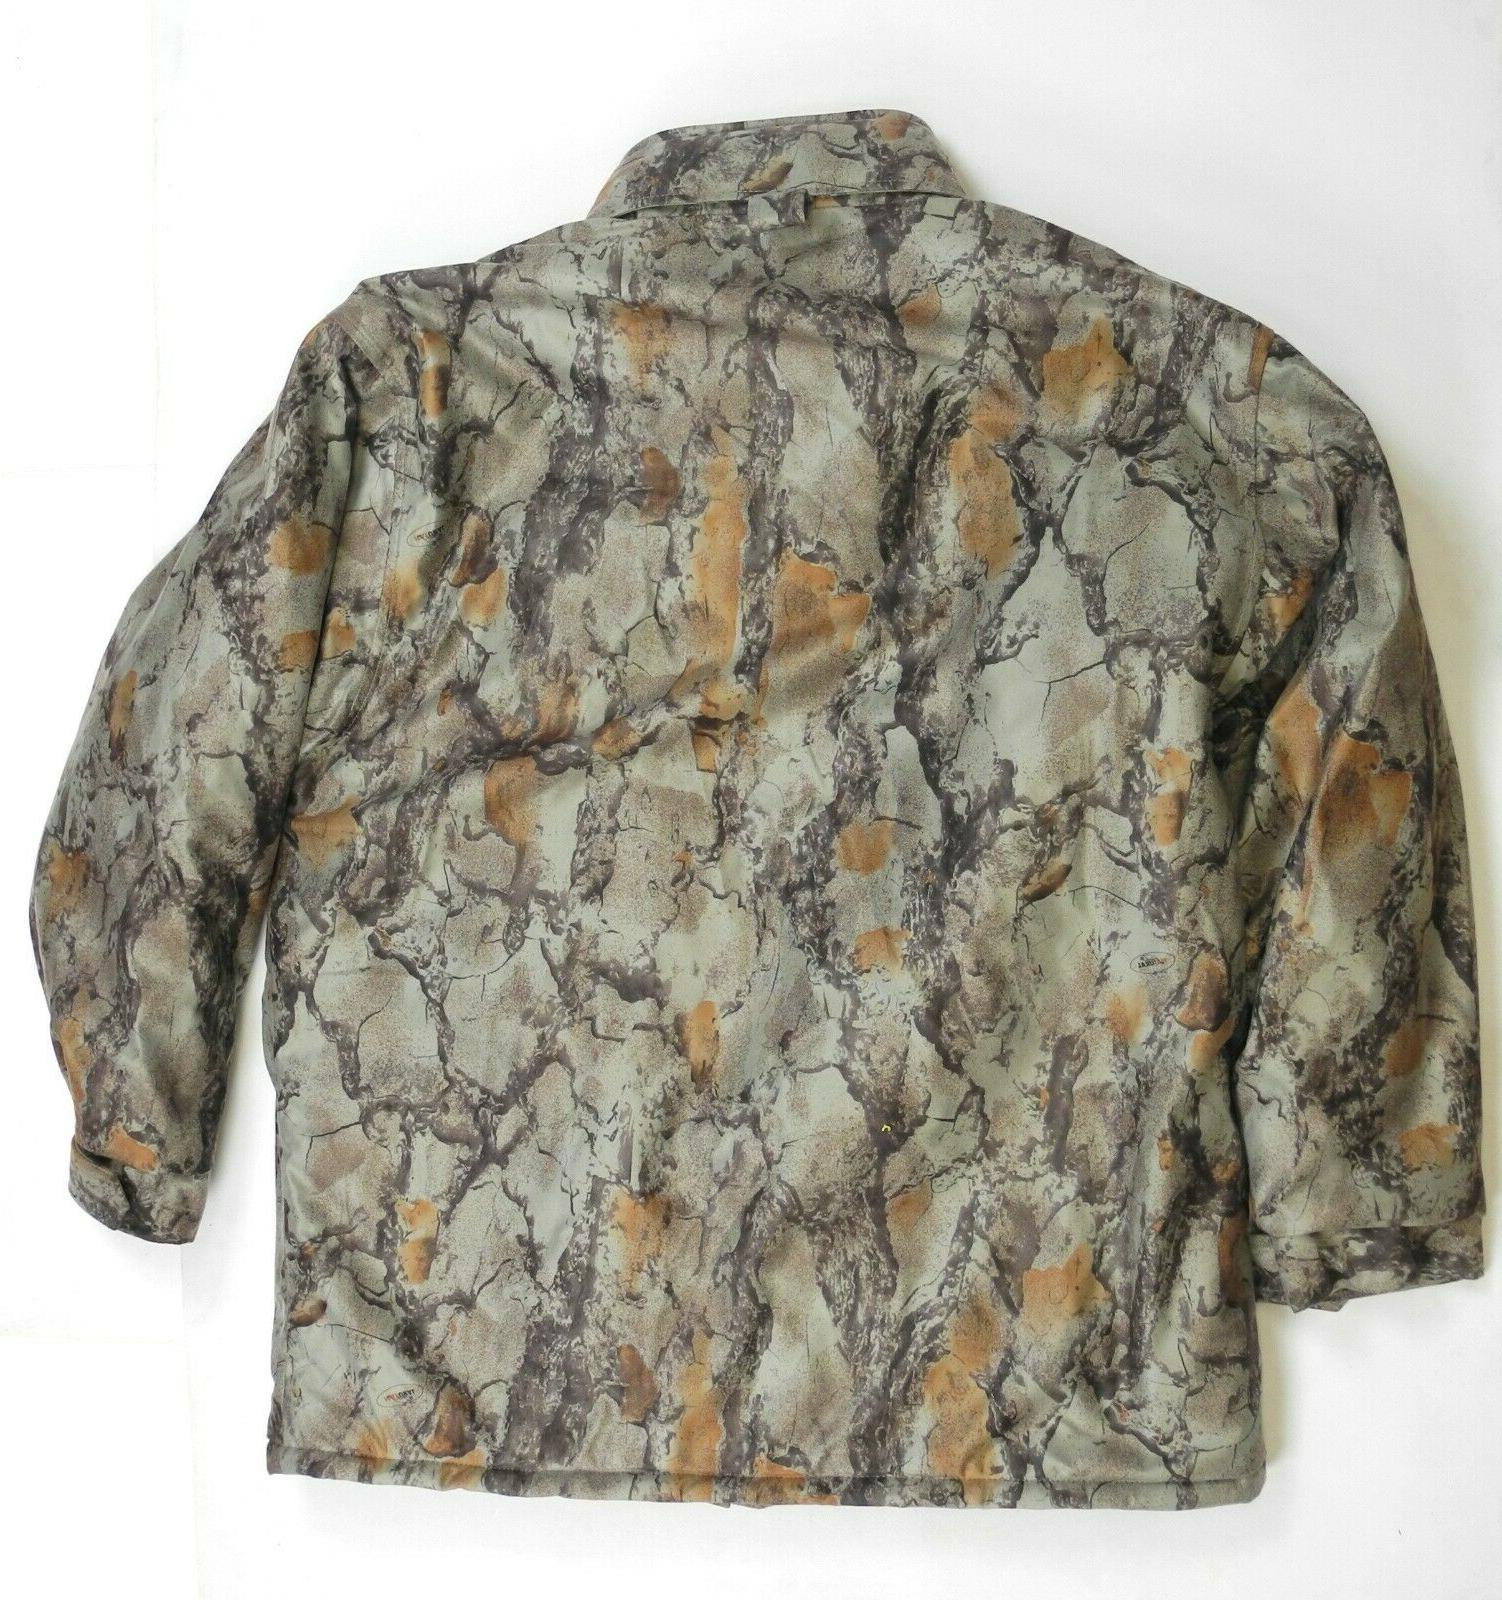 Natural Insulated - XL - New - Jacket